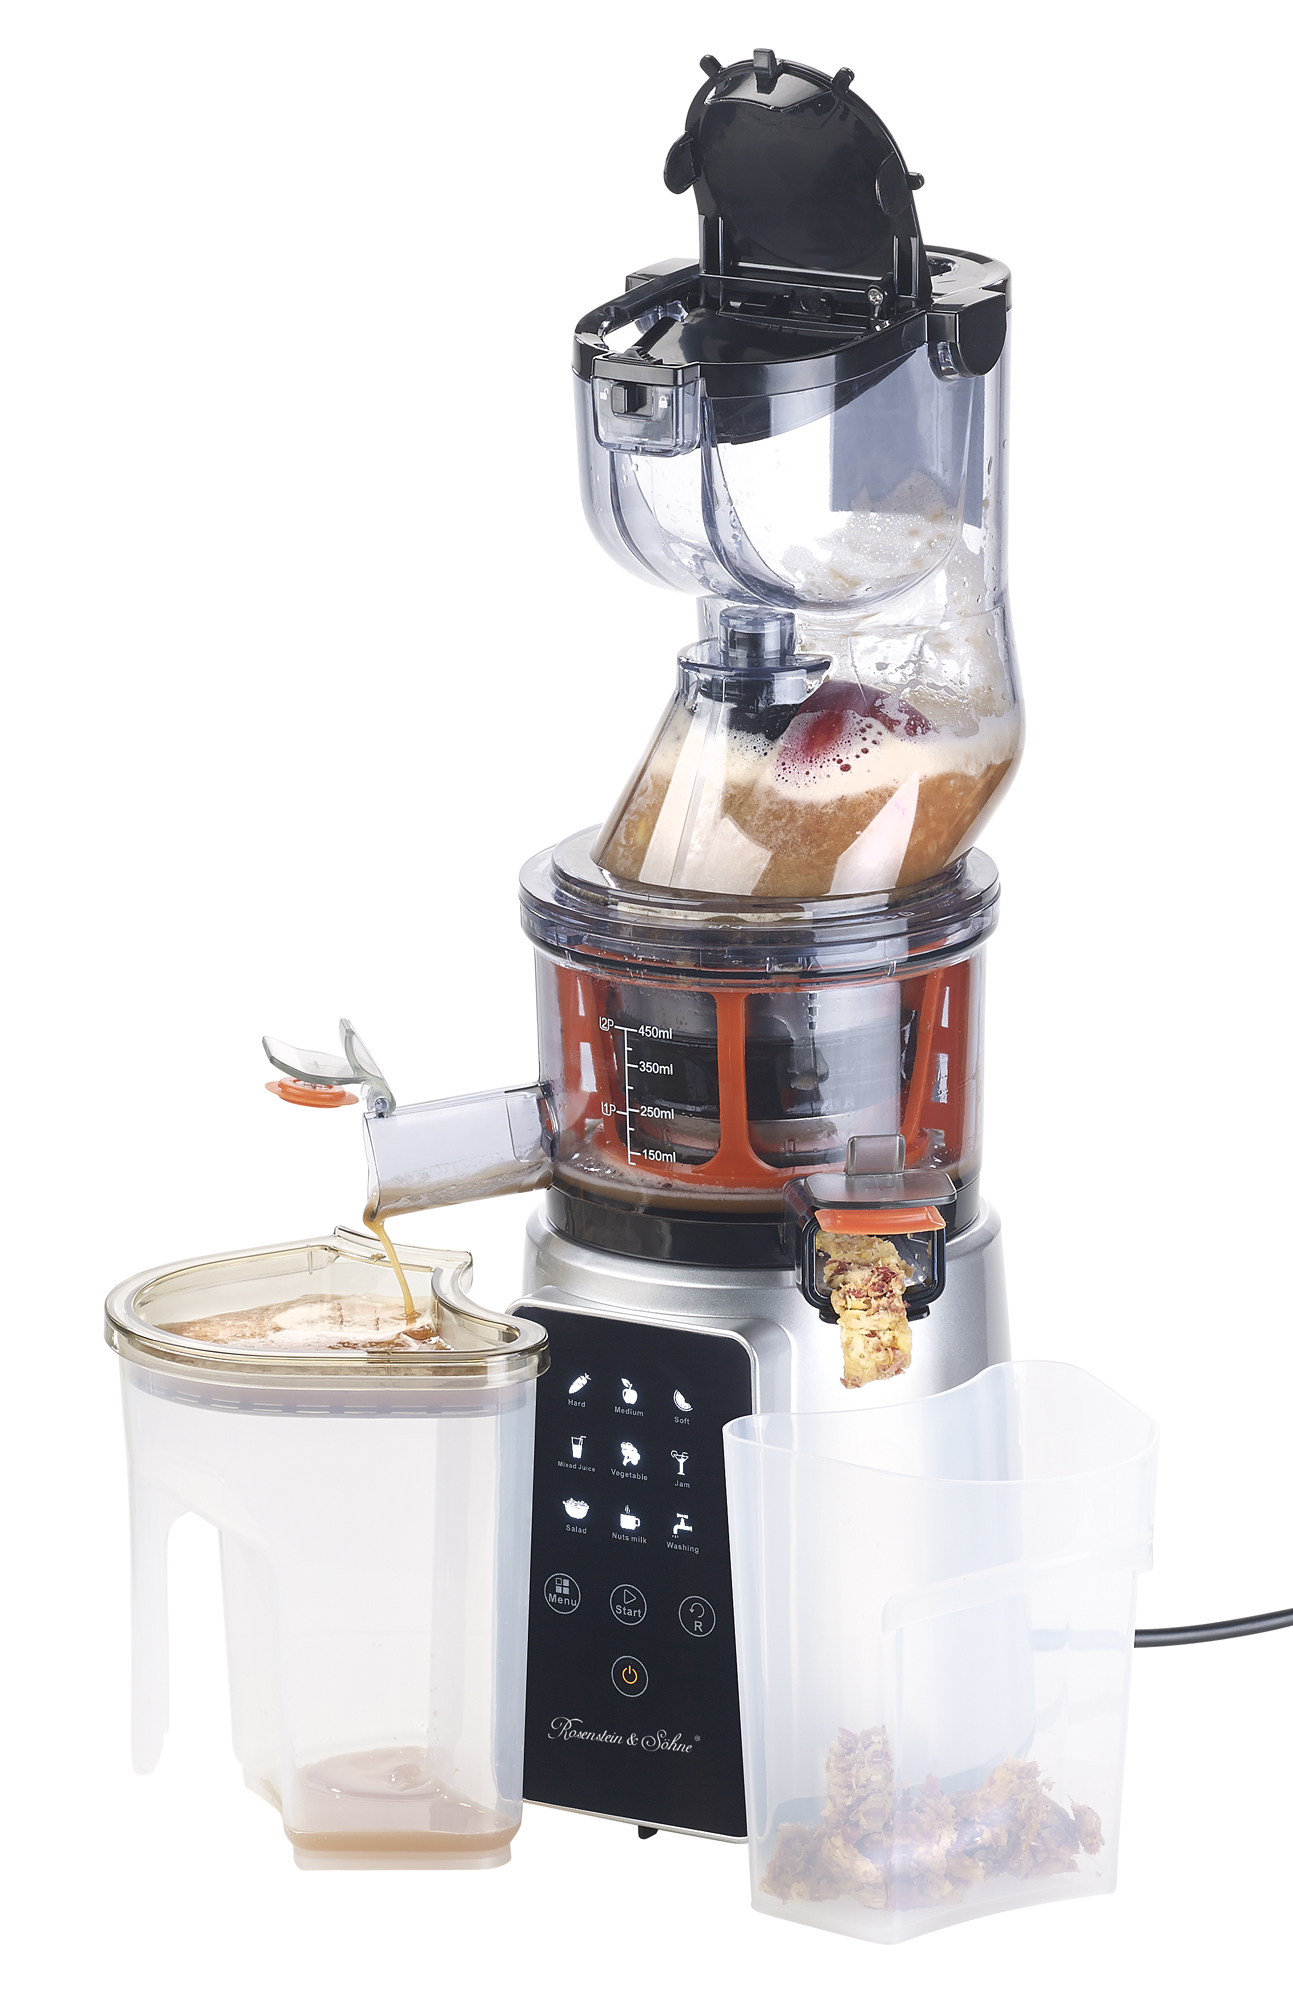 Nutrilovers Slow Juicer Elektrischer Entsafter : Presse-Information Rosenstein & Sohne Digitaler Slow Juicer & Kaltpress-Ents...